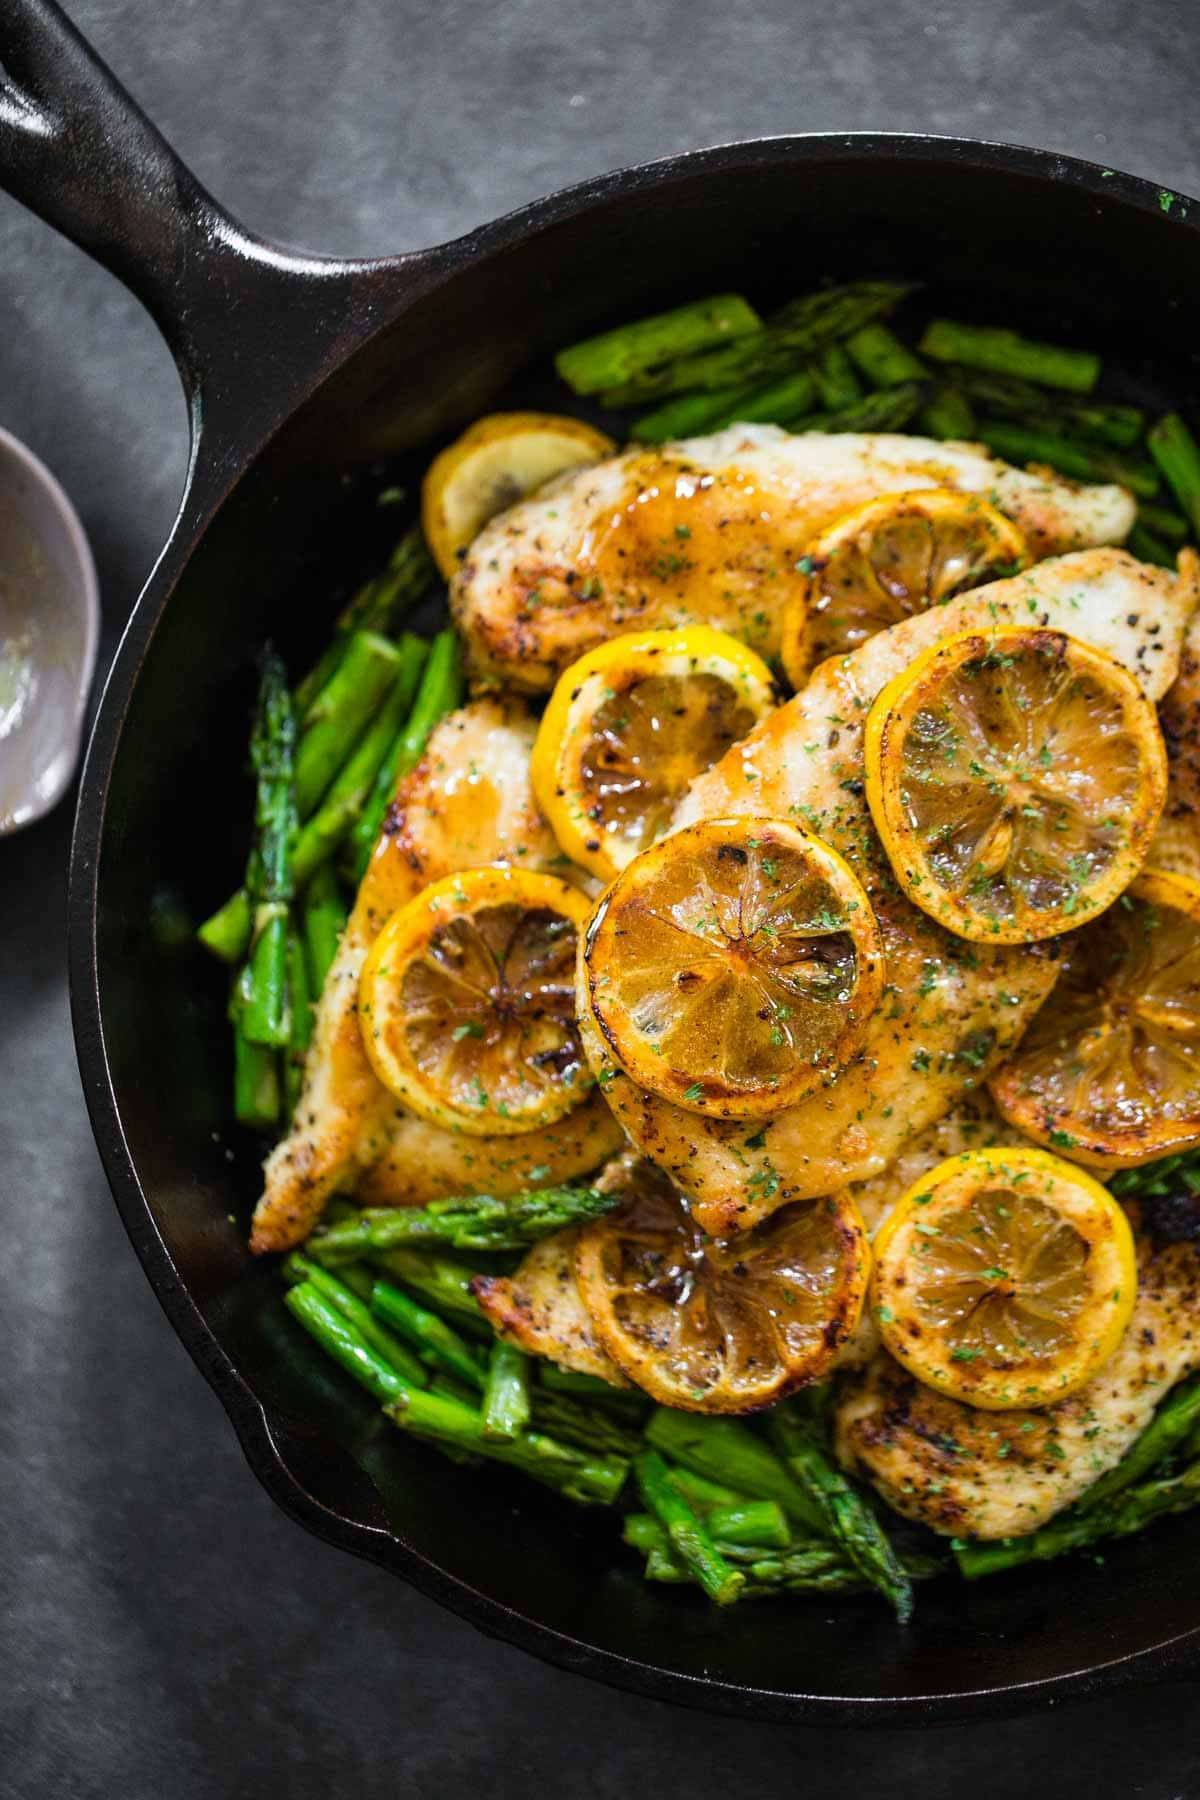 5 Ingredient Lemon Chicken With Asparagus  A Bright, Fresh, Healthy Recipe  That's Ready